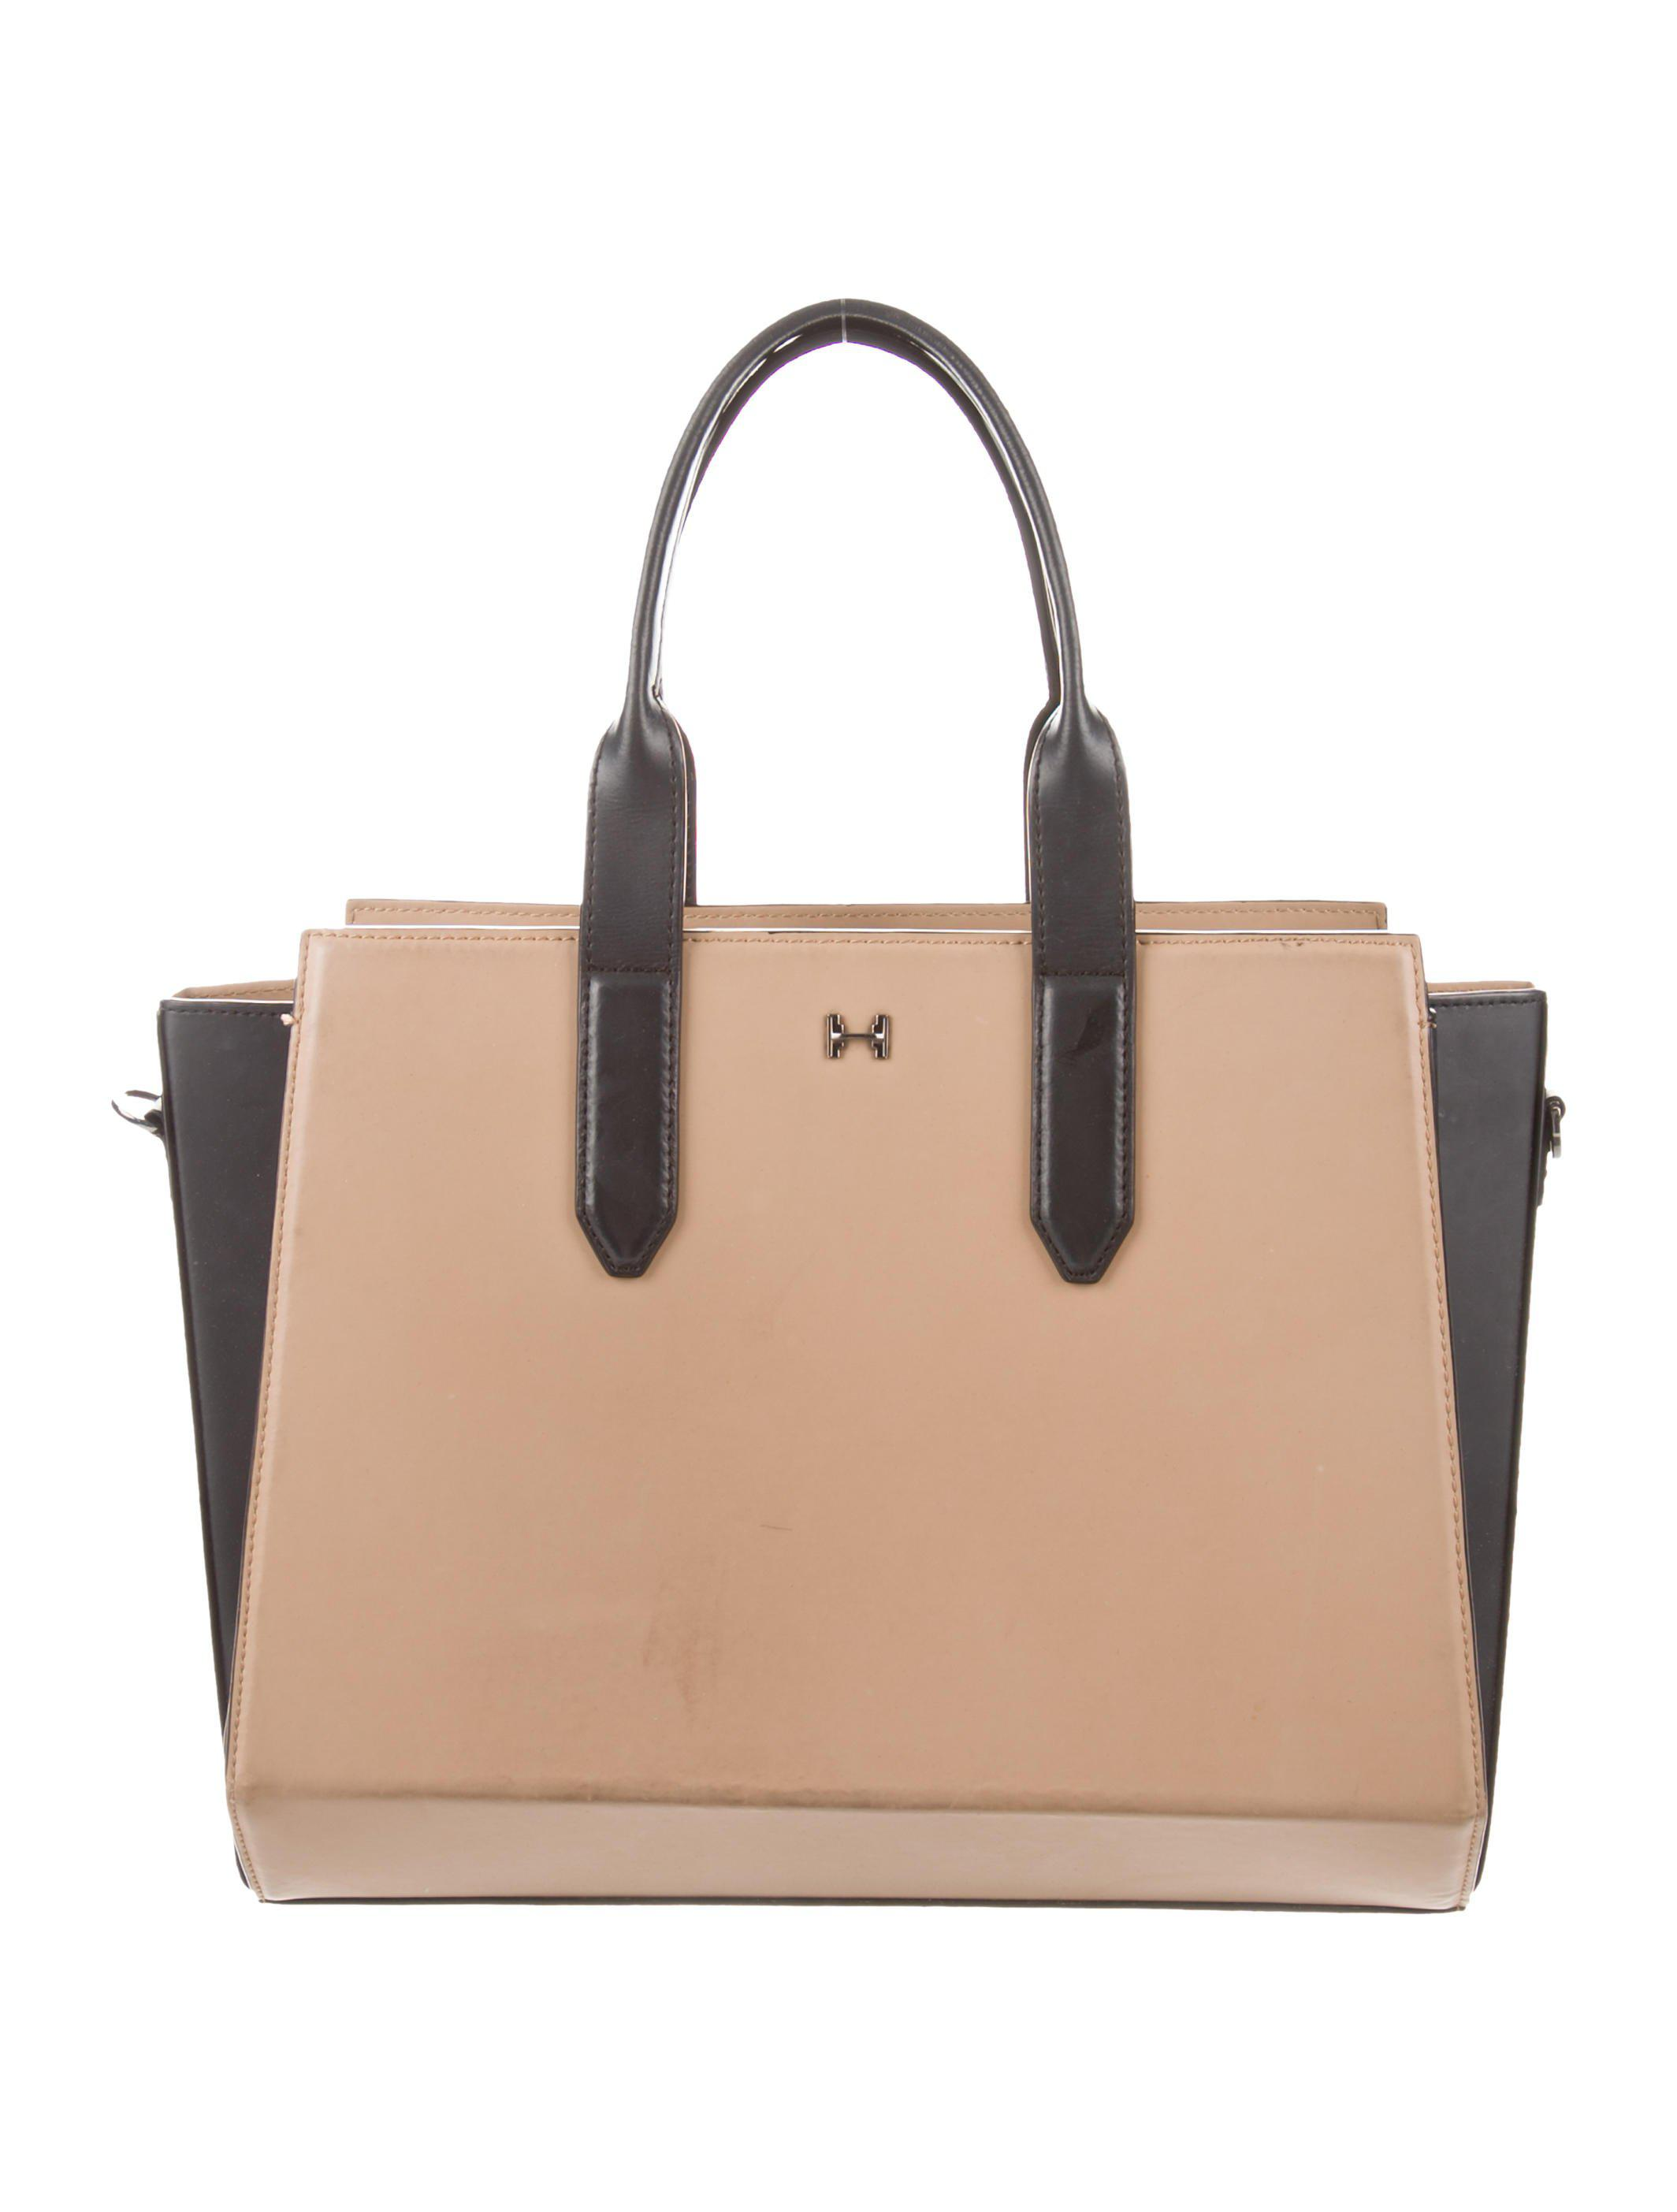 7ad4f881d7 Lyst - Halston Heritage Colorblock Leather Satchel Beige in Natural